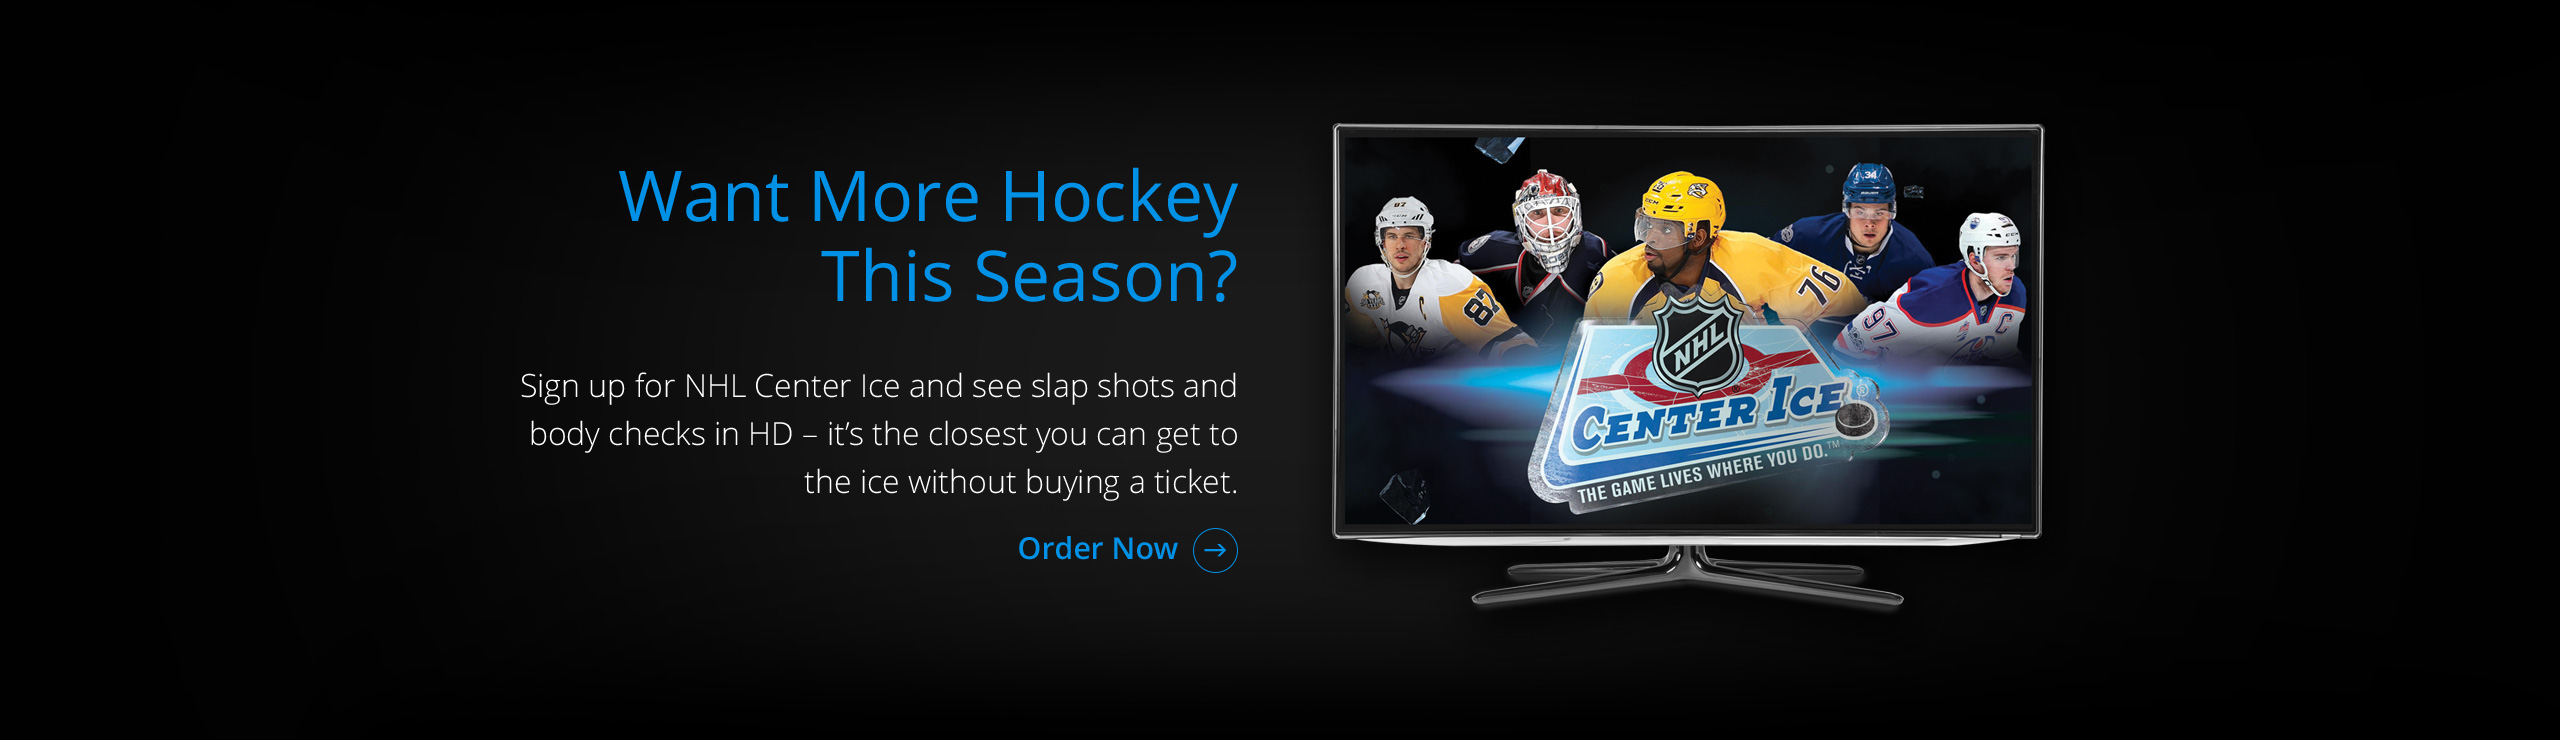 Want More Hockey This Season? Click here!